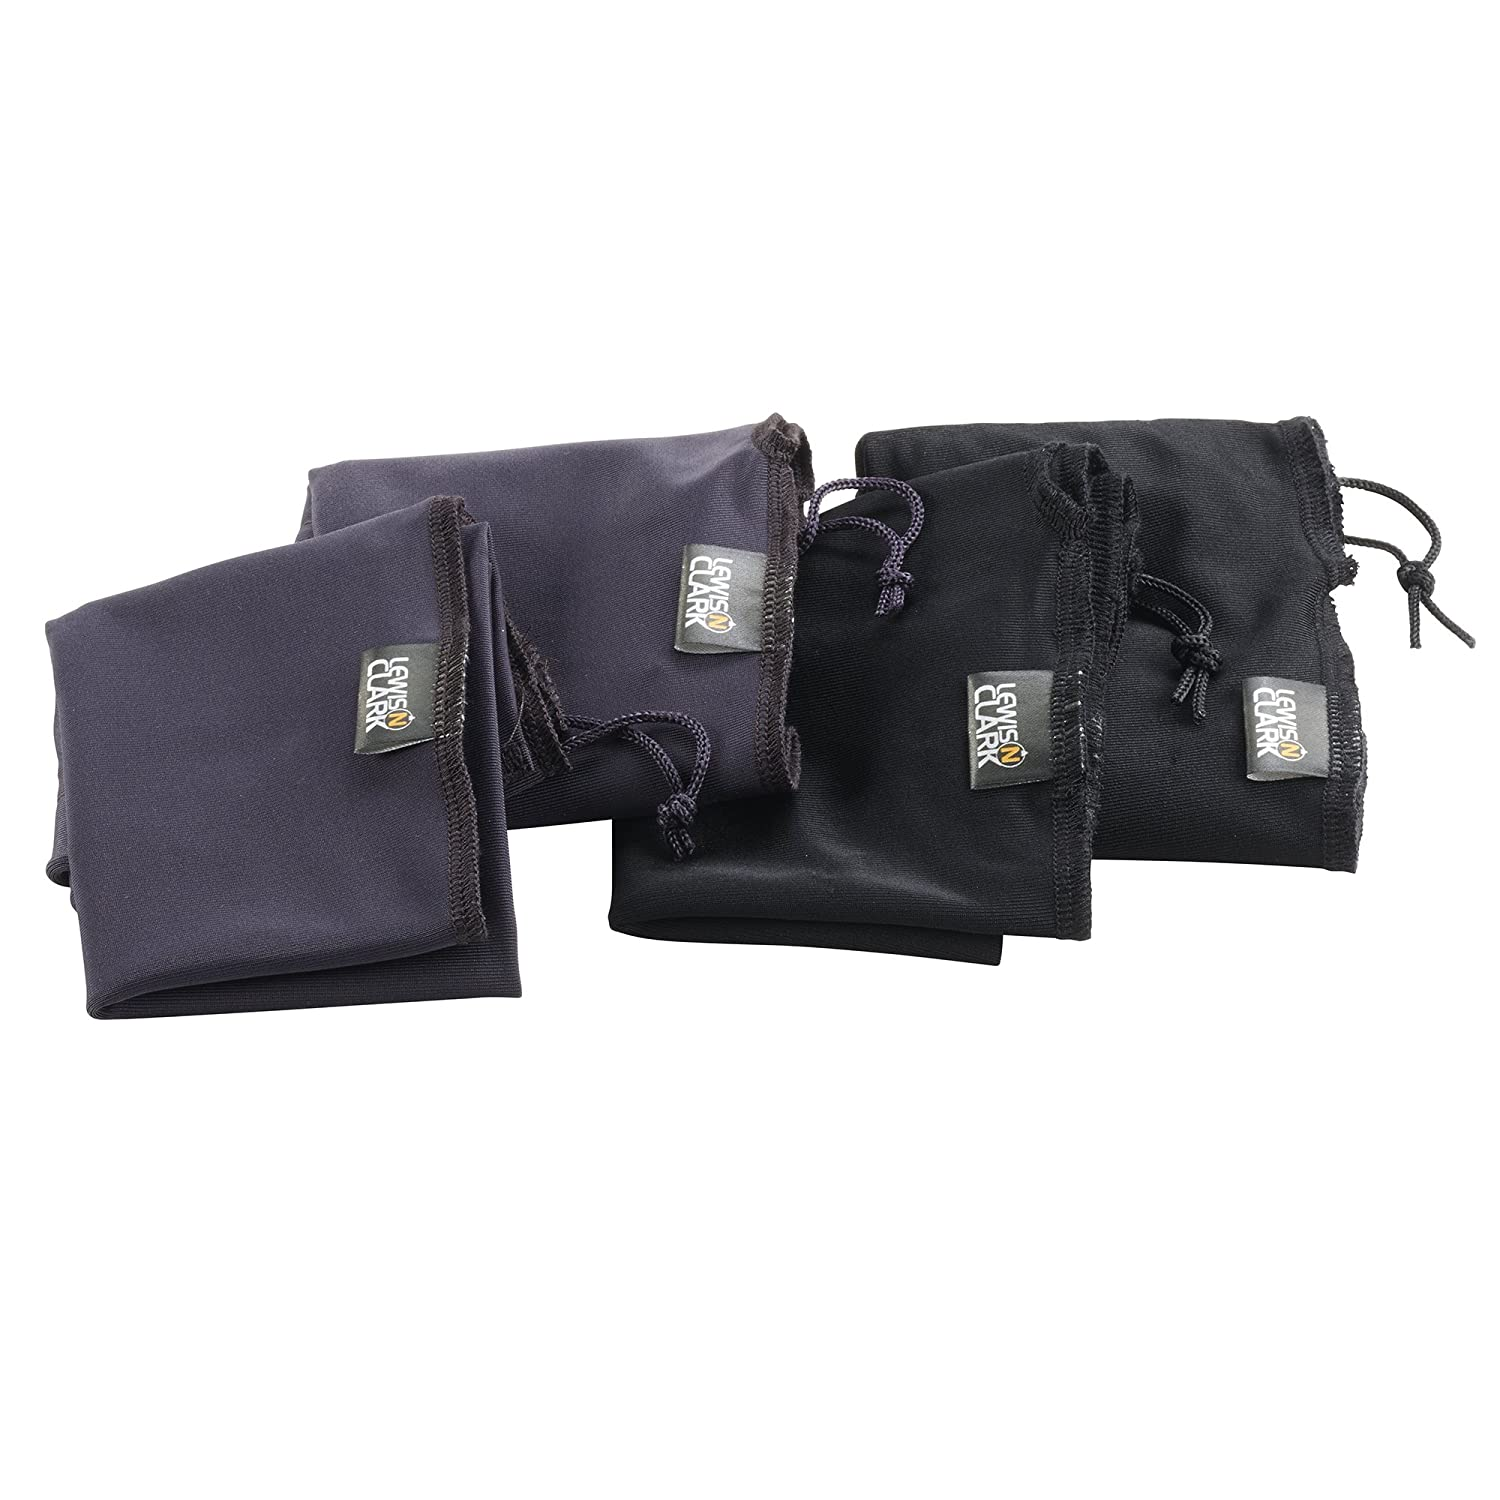 Lewis N. Clark Travel Shoe Bags with Drawstring Closures,Black/charcoal,One Size 169-Black/Purple-One Size LCI AM 169